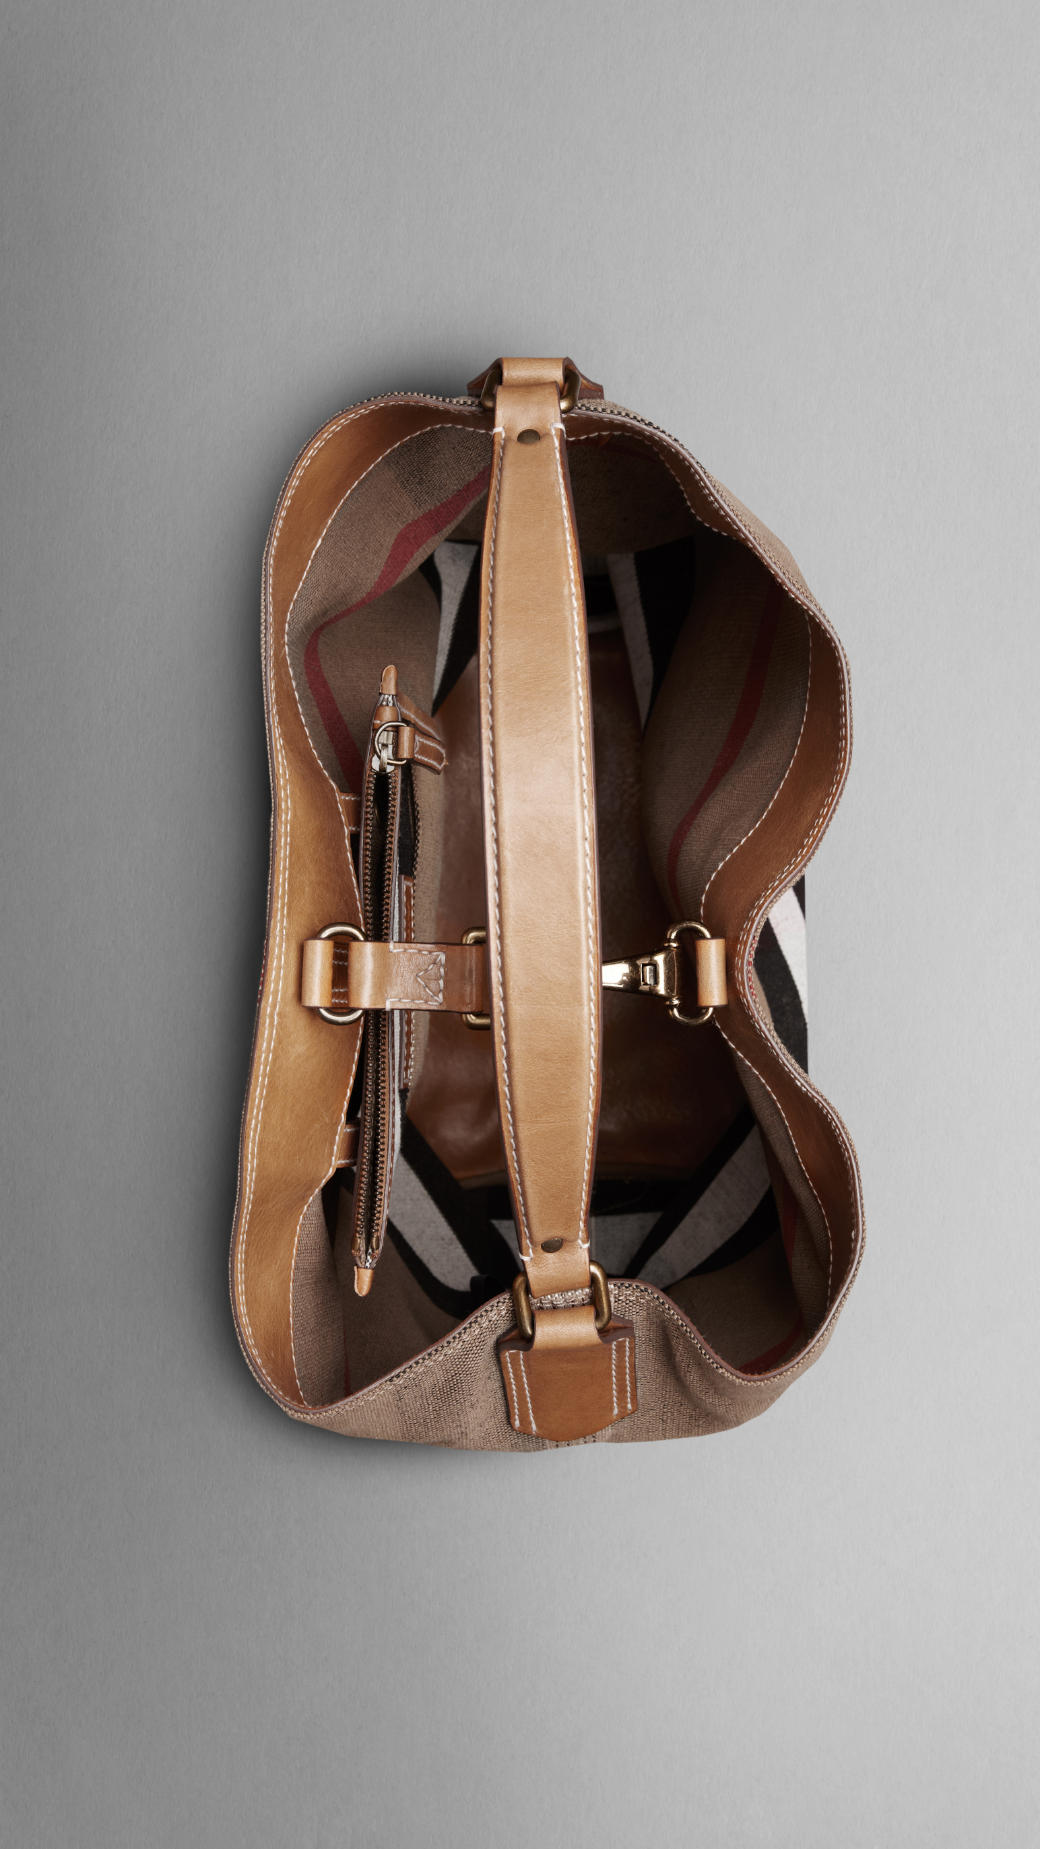 5cef4a89bed Burberry Large Check Cotton Canvas Hobo Bag in Brown - Lyst